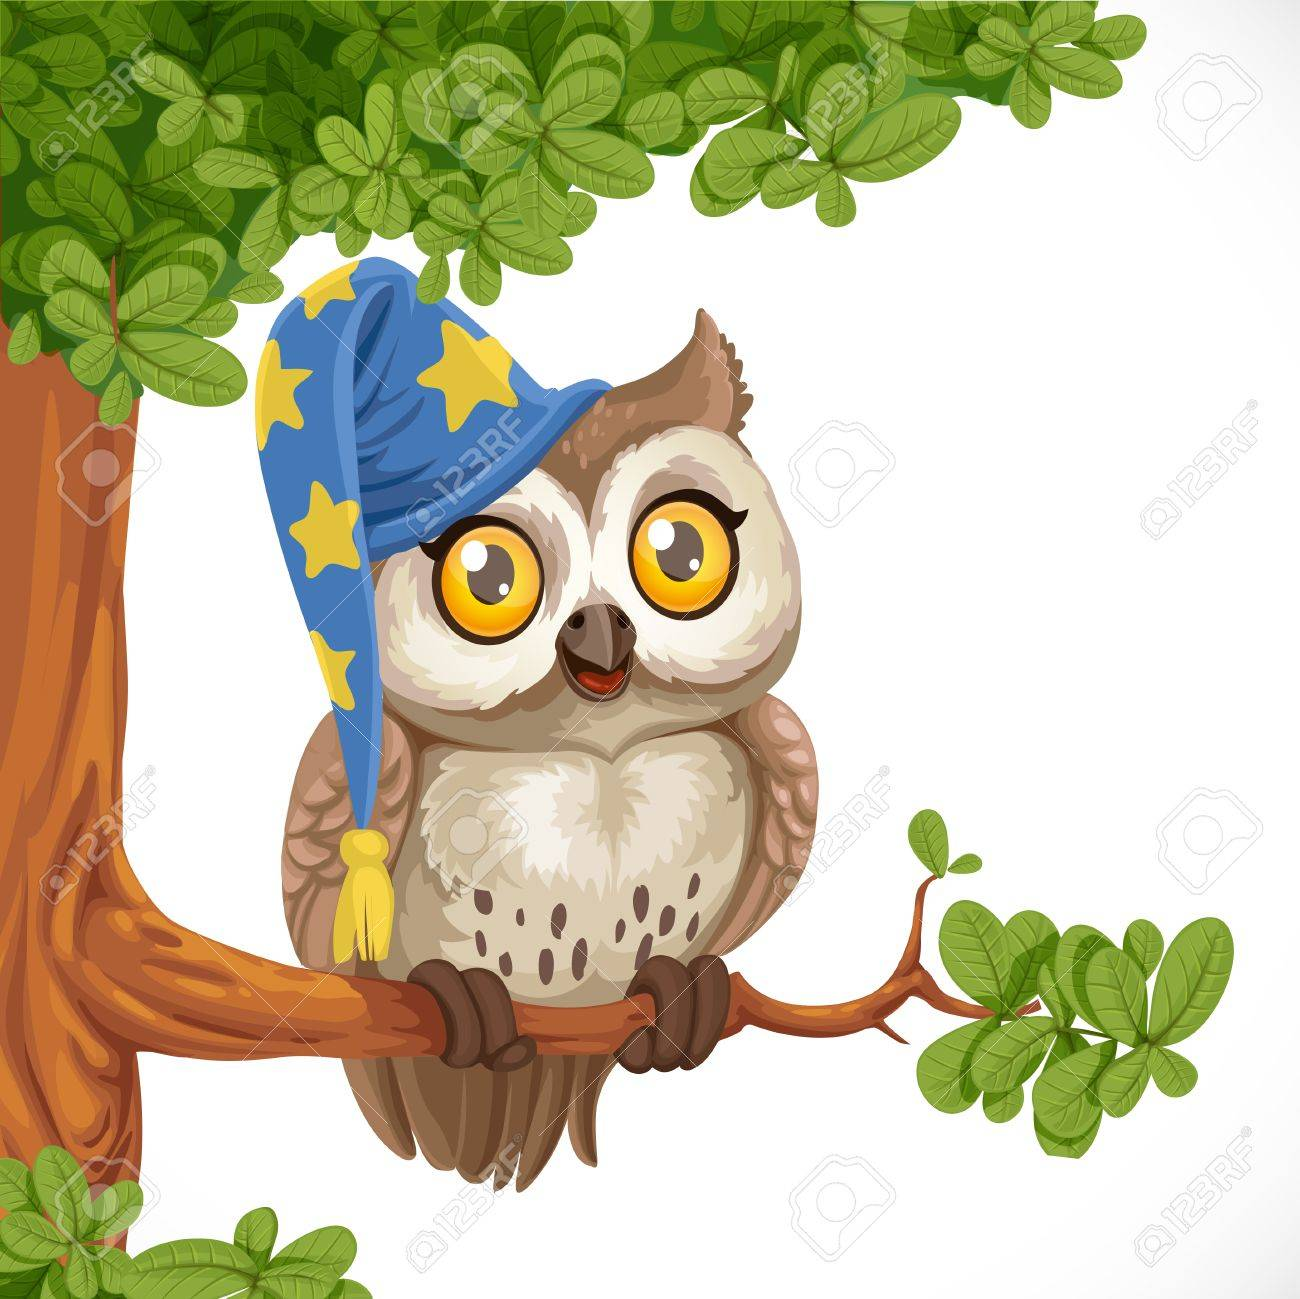 Cute owl wearing a hat sitting on a tree branch isolated on a white  background Stock d85f848f2fc3